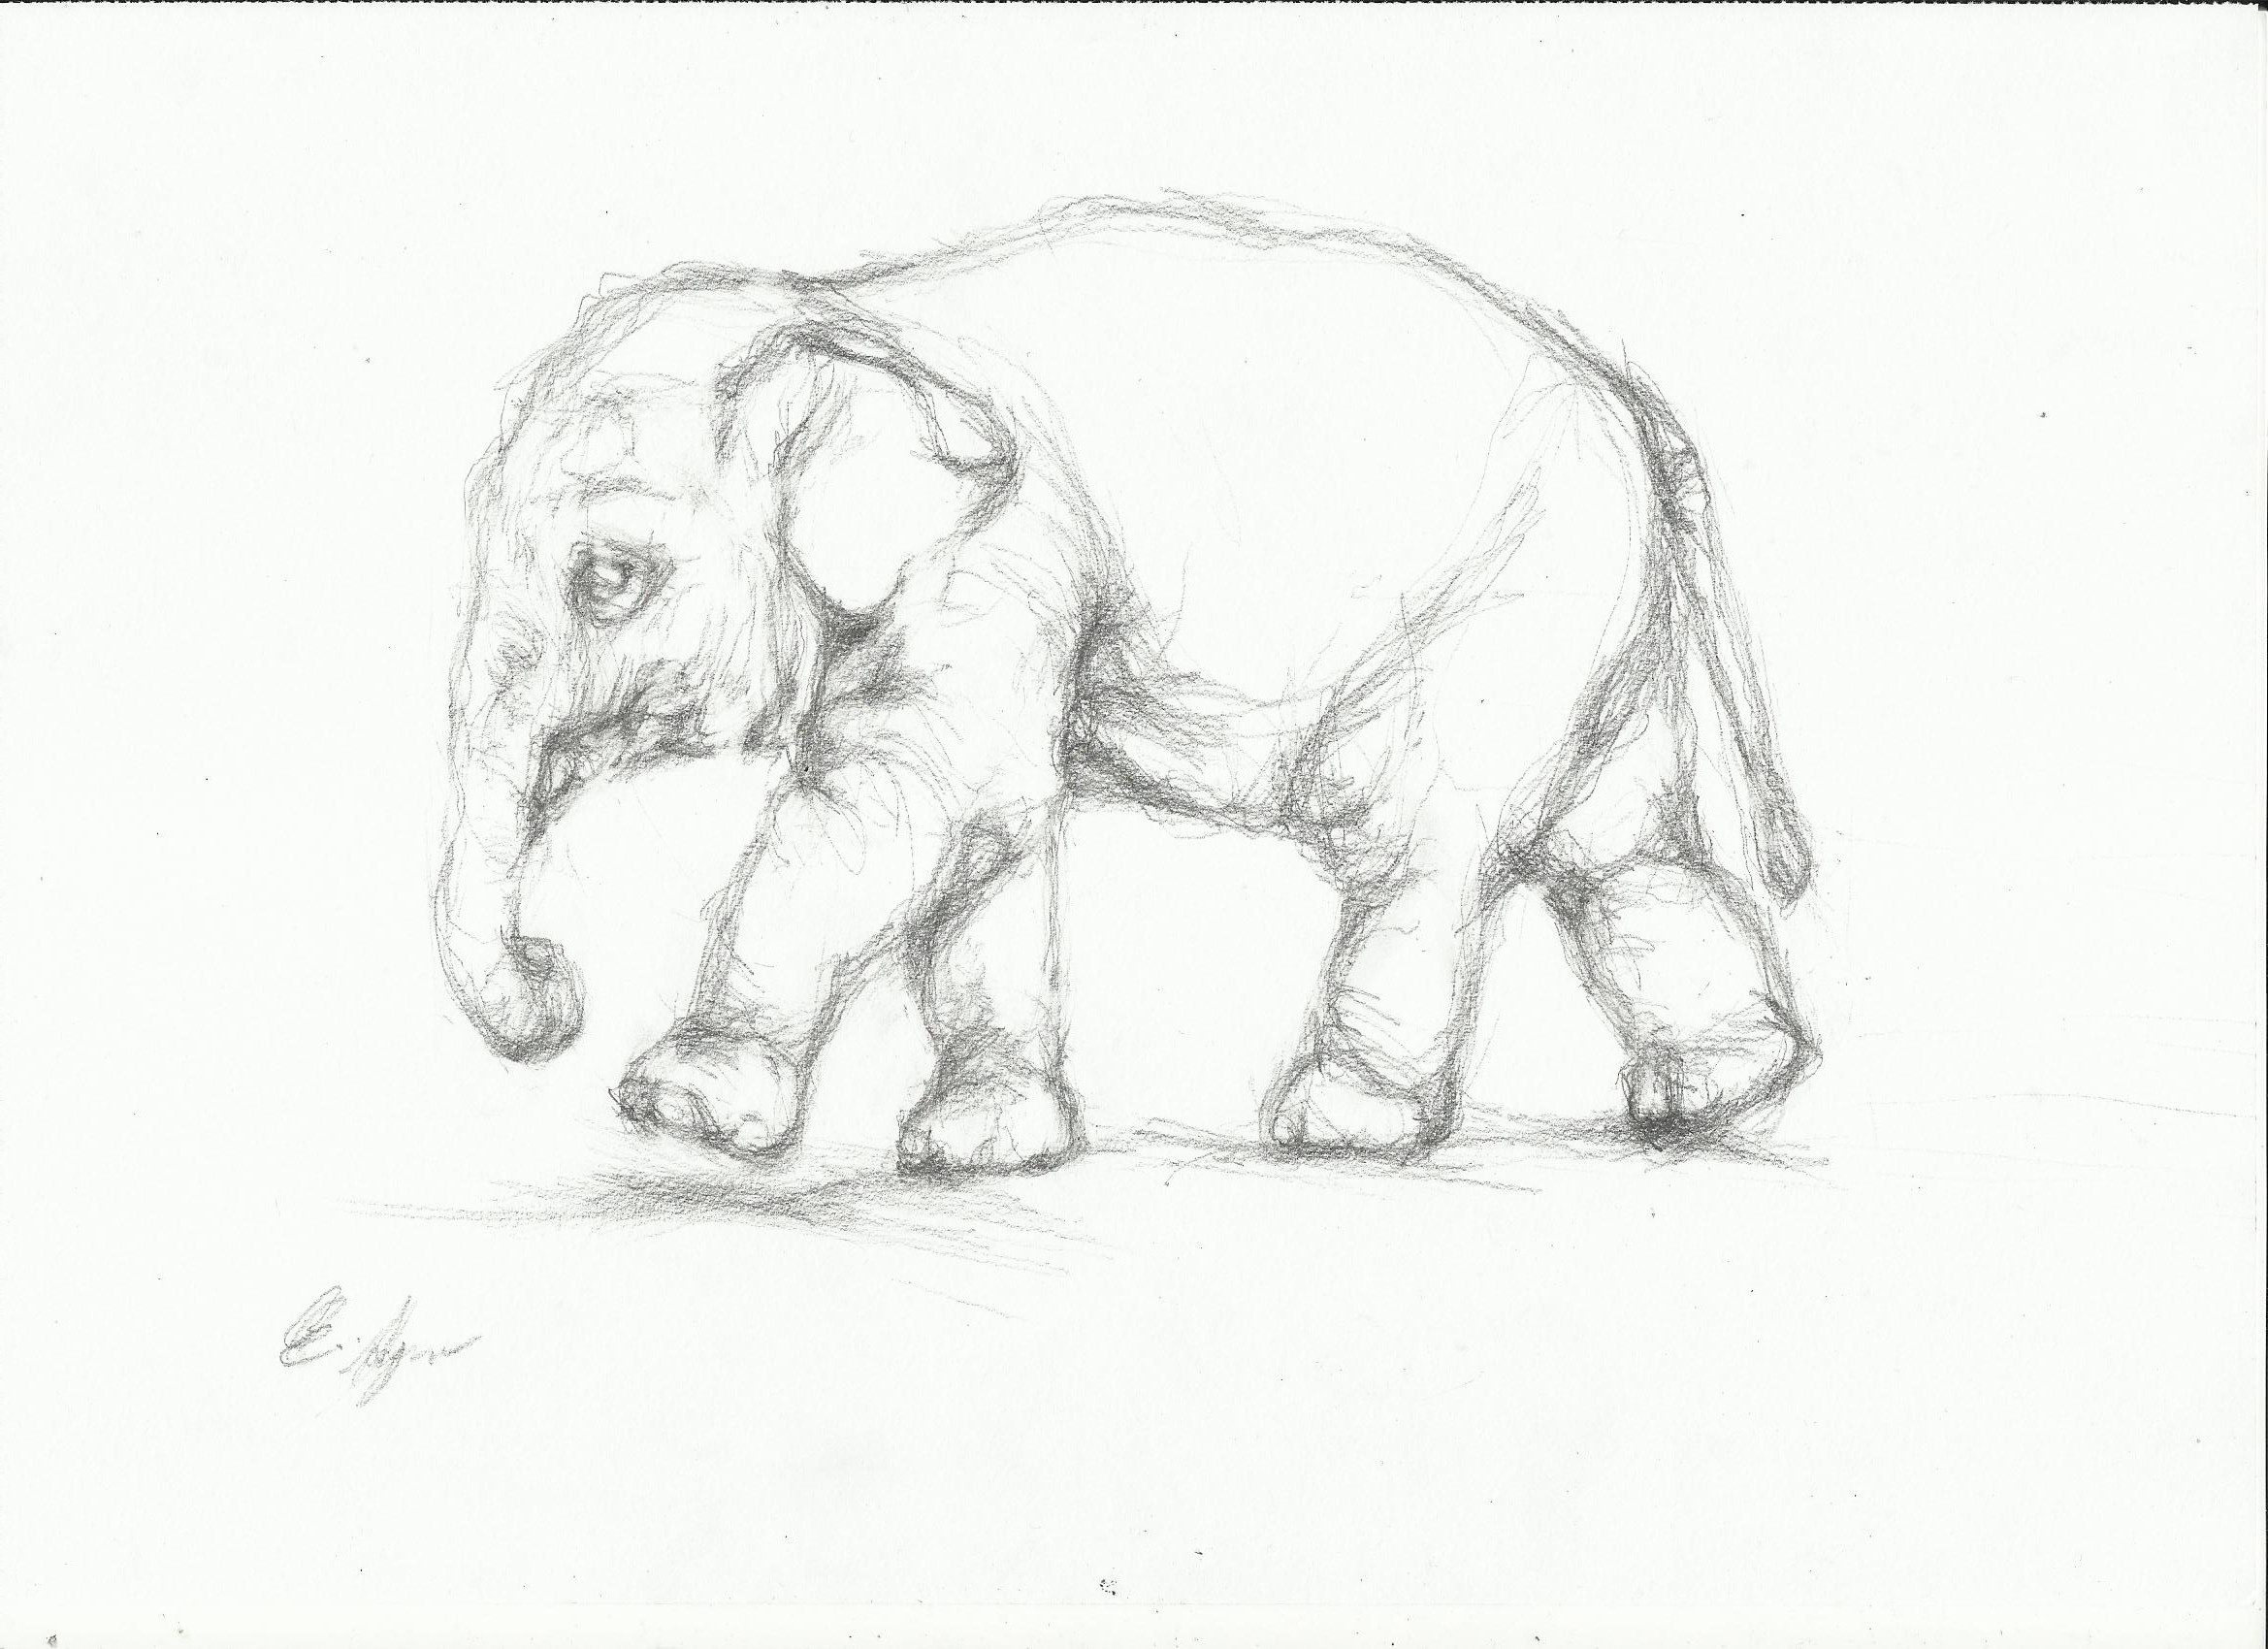 2338x1700 Indian Elephant Pencil Drawing Easy Pencil Shading Of Elephants